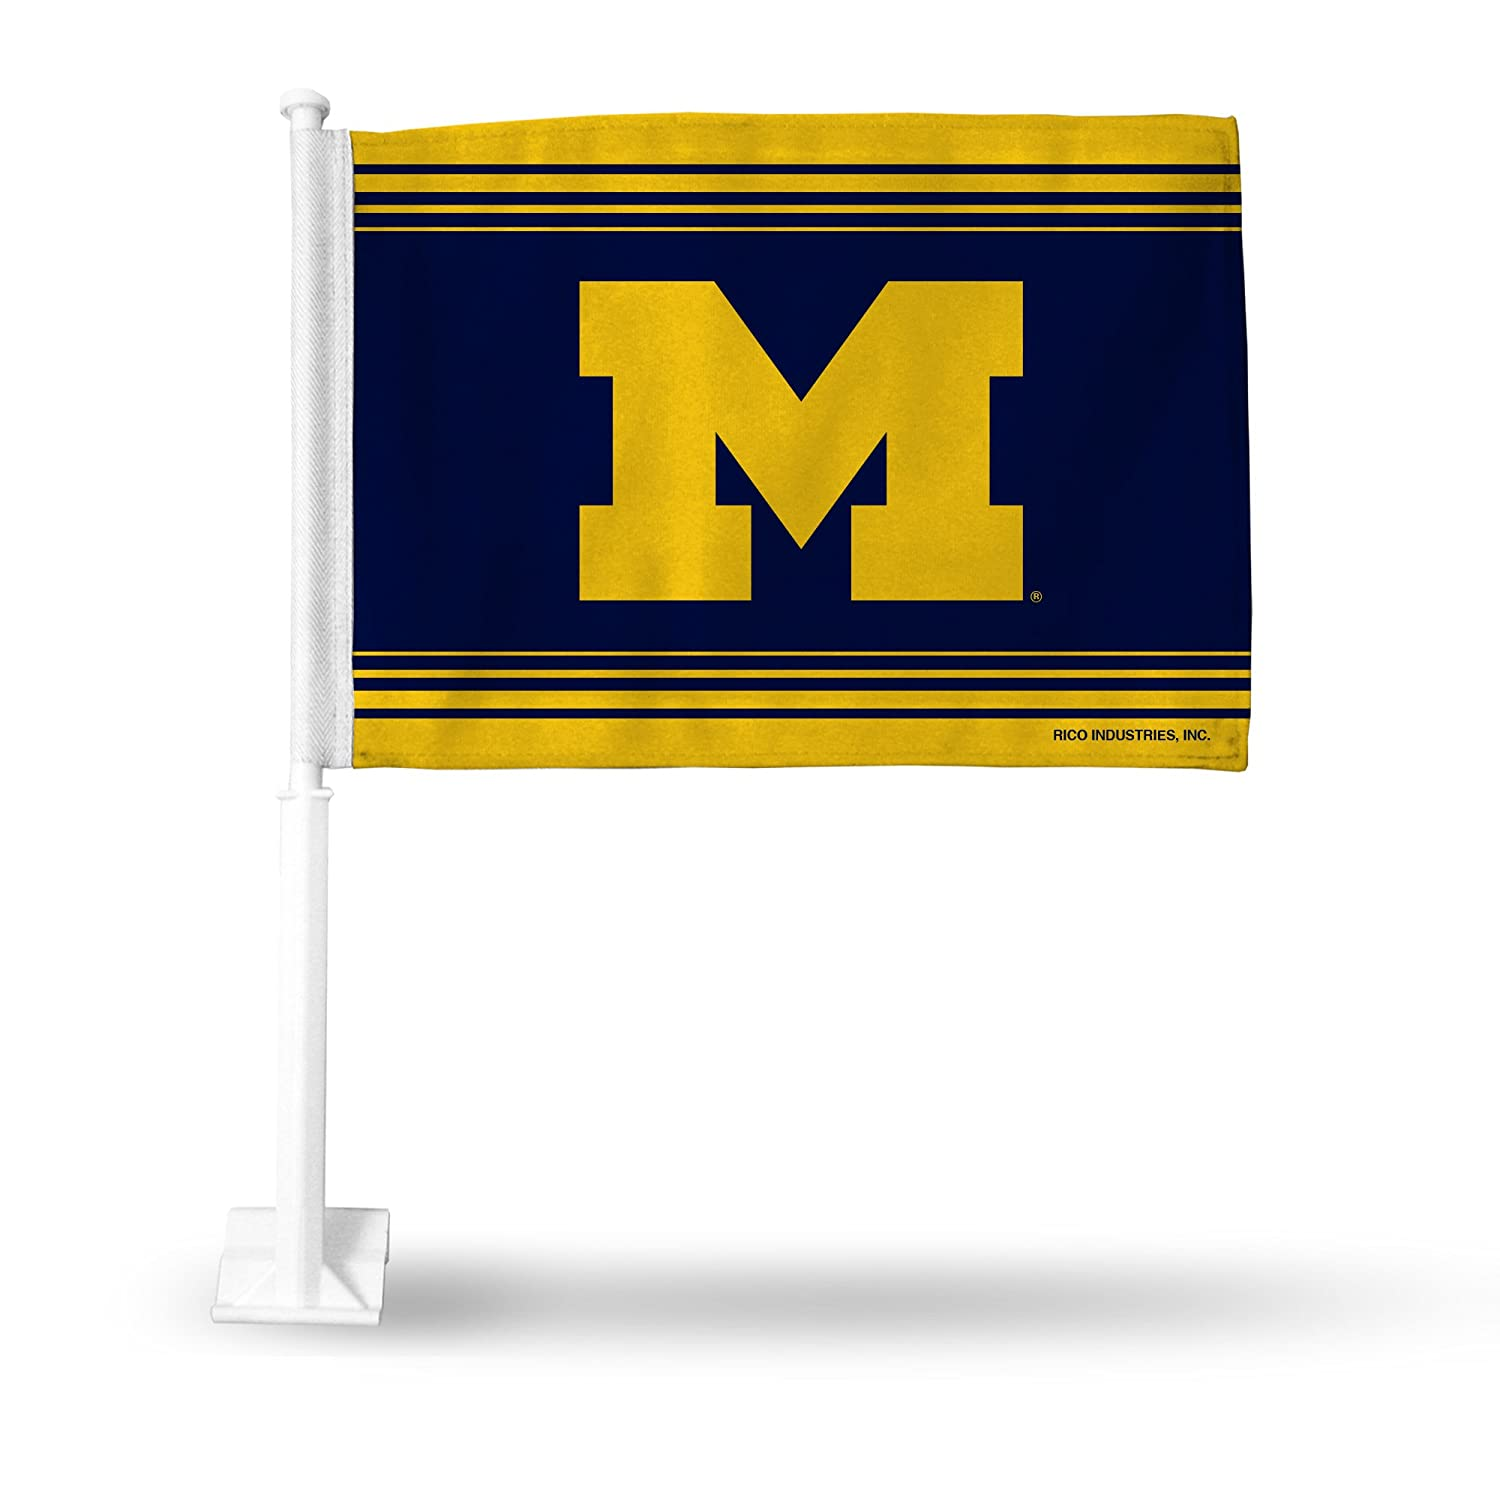 RICO INDUSTRIES NCAA Michigan Wolverines Car Flag FG220006